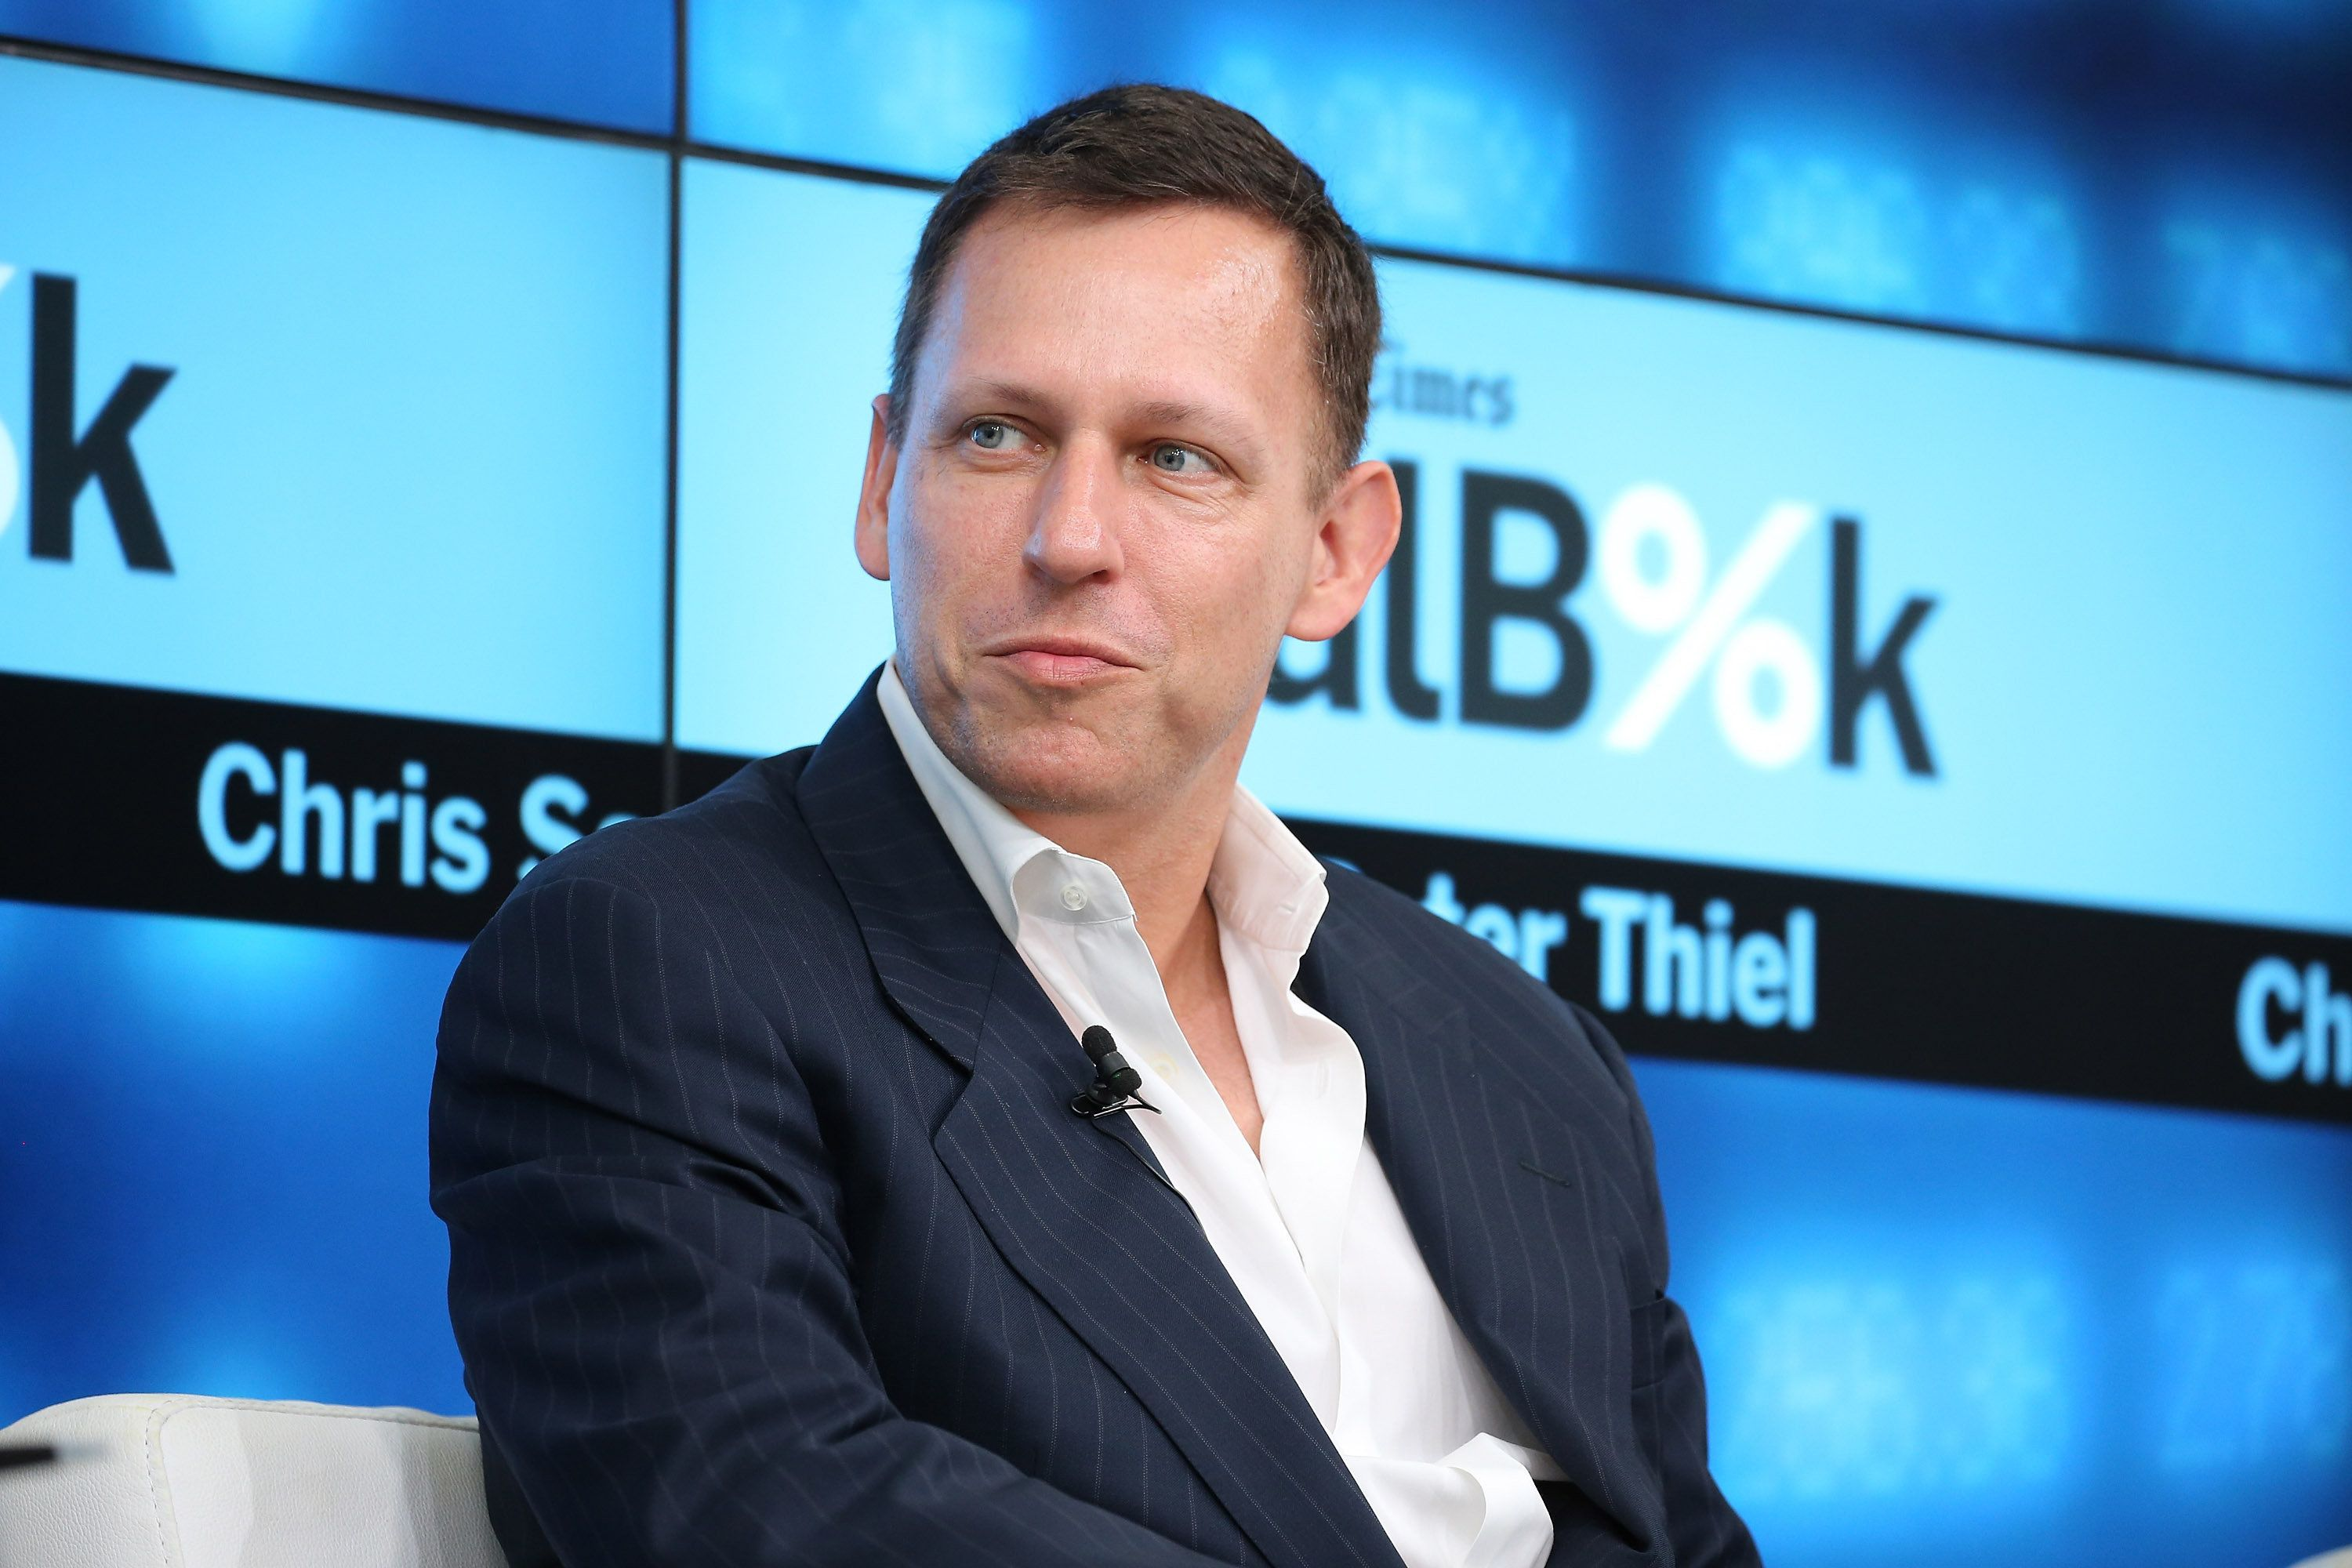 Peter Thiel, who has been an outspoken critic of the U.S. Food and Drug Administration, invested inRational Vaccines, which ran a human drug trial in the Caribbean without FDA or institutionalreview board oversight.